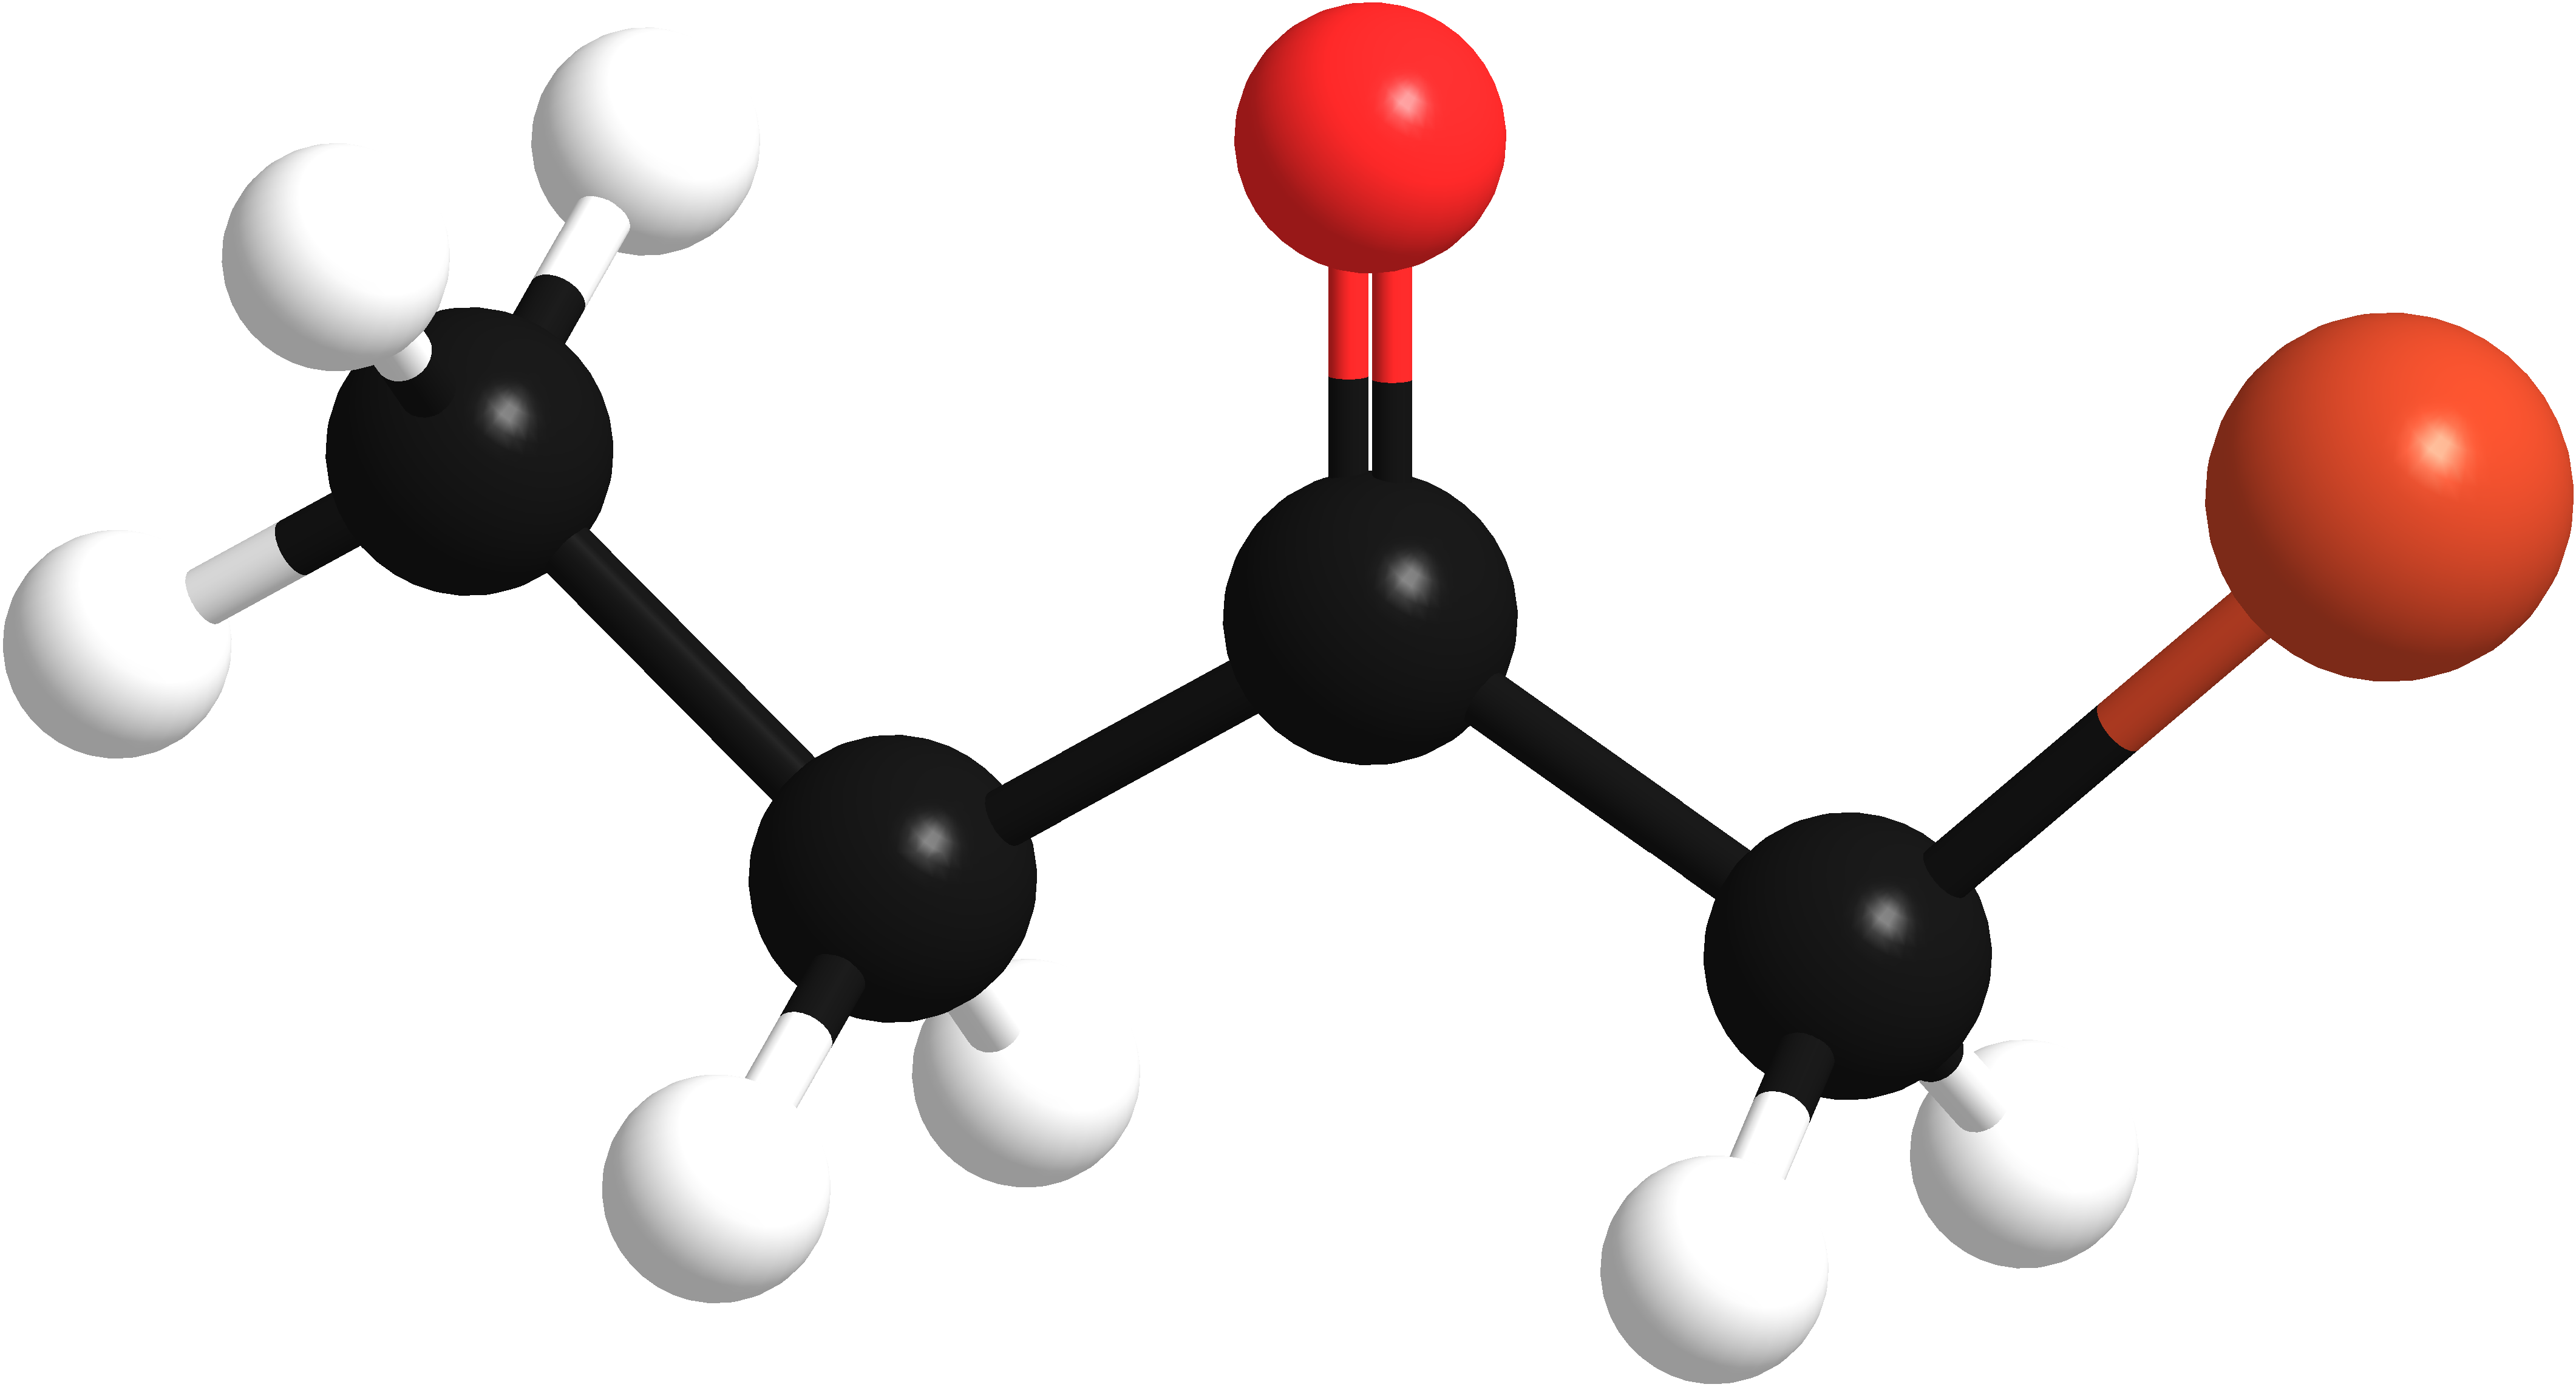 1Butanone 1phenyl495409  Welcome to the NIST WebBook